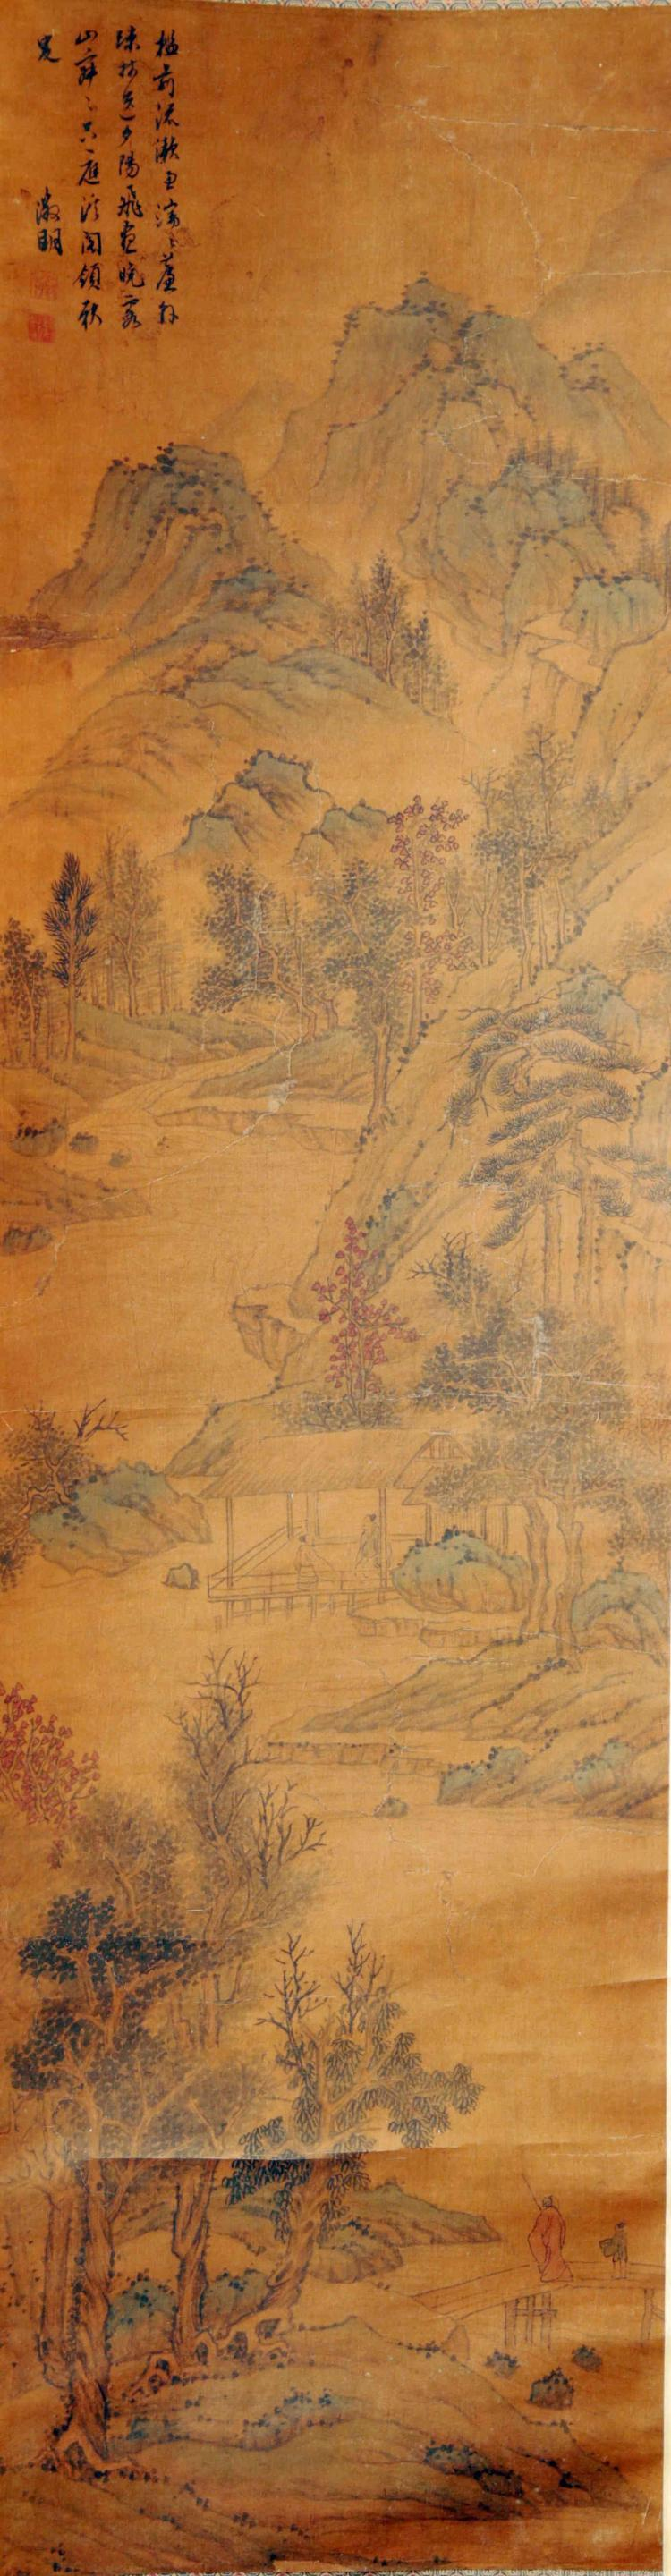 Chinese Scroll Painting Attributed to Wen Zhengming (1470-1559)